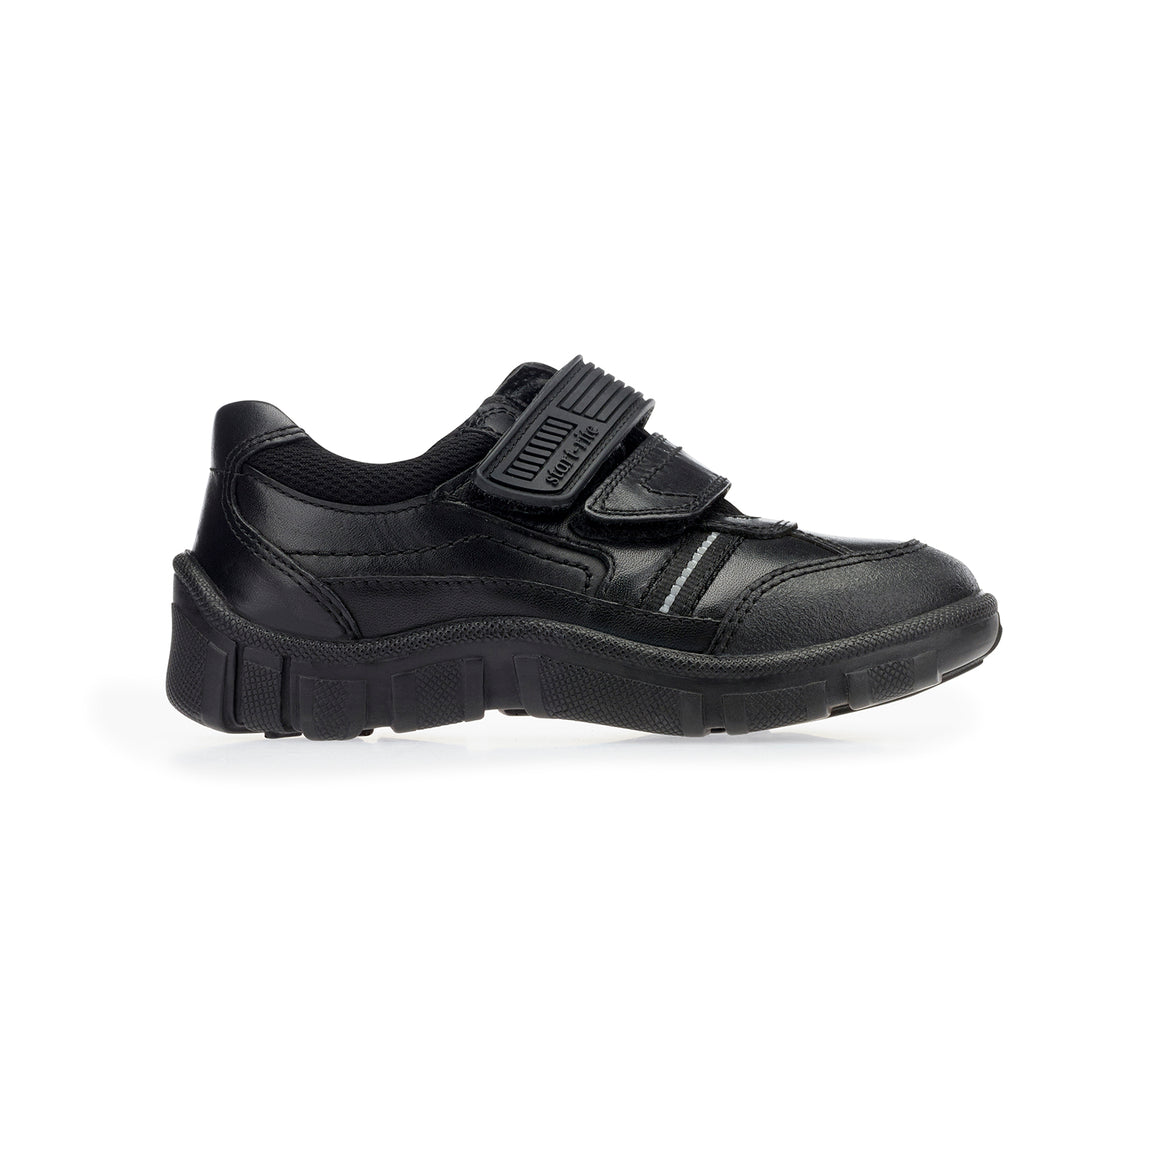 Luke School Shoes for Boys in Black